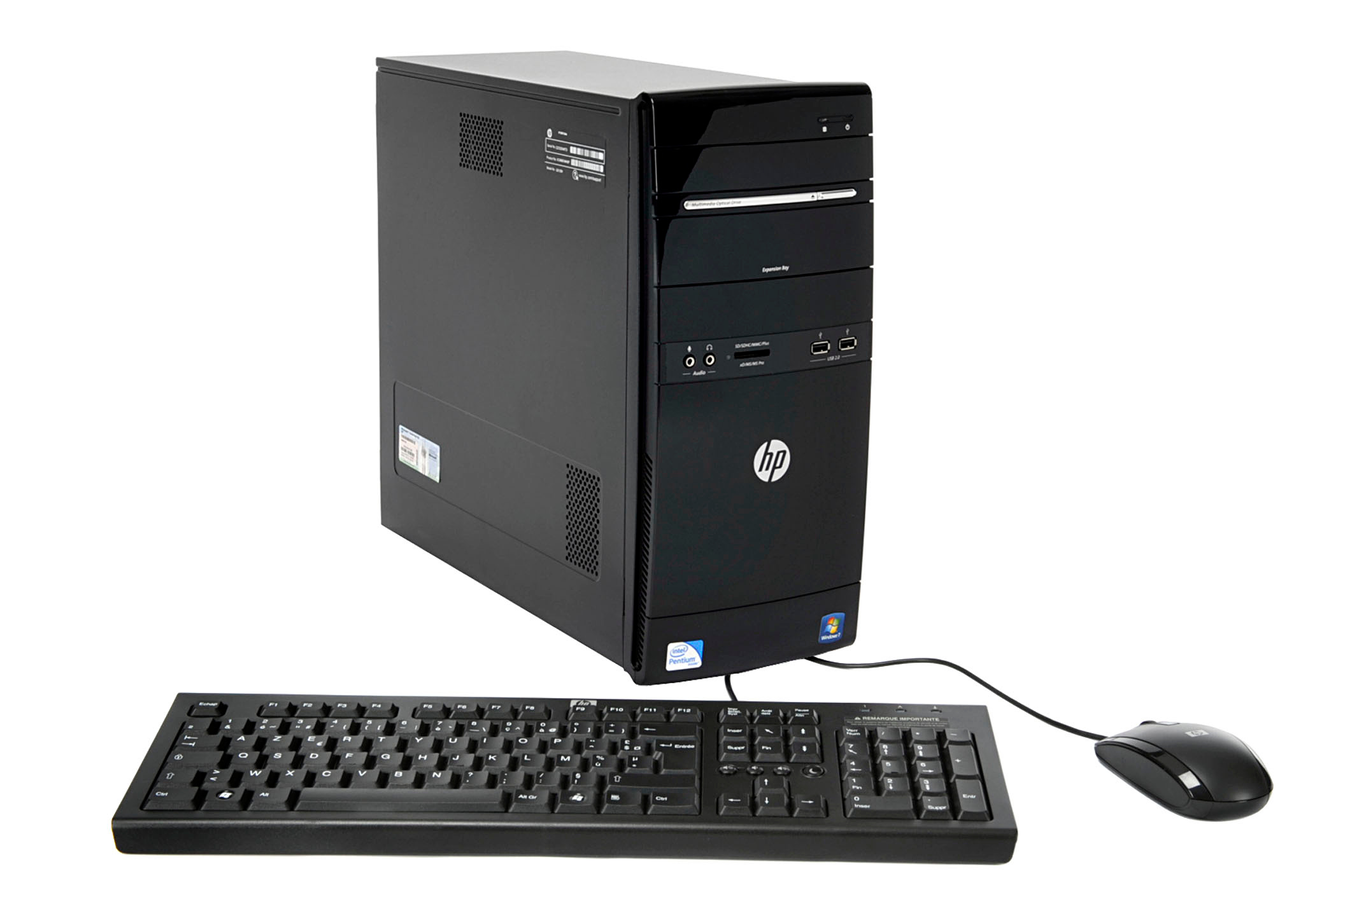 Pc de bureau hp g5135 3296121 darty - Ordinateur de bureau darty ...